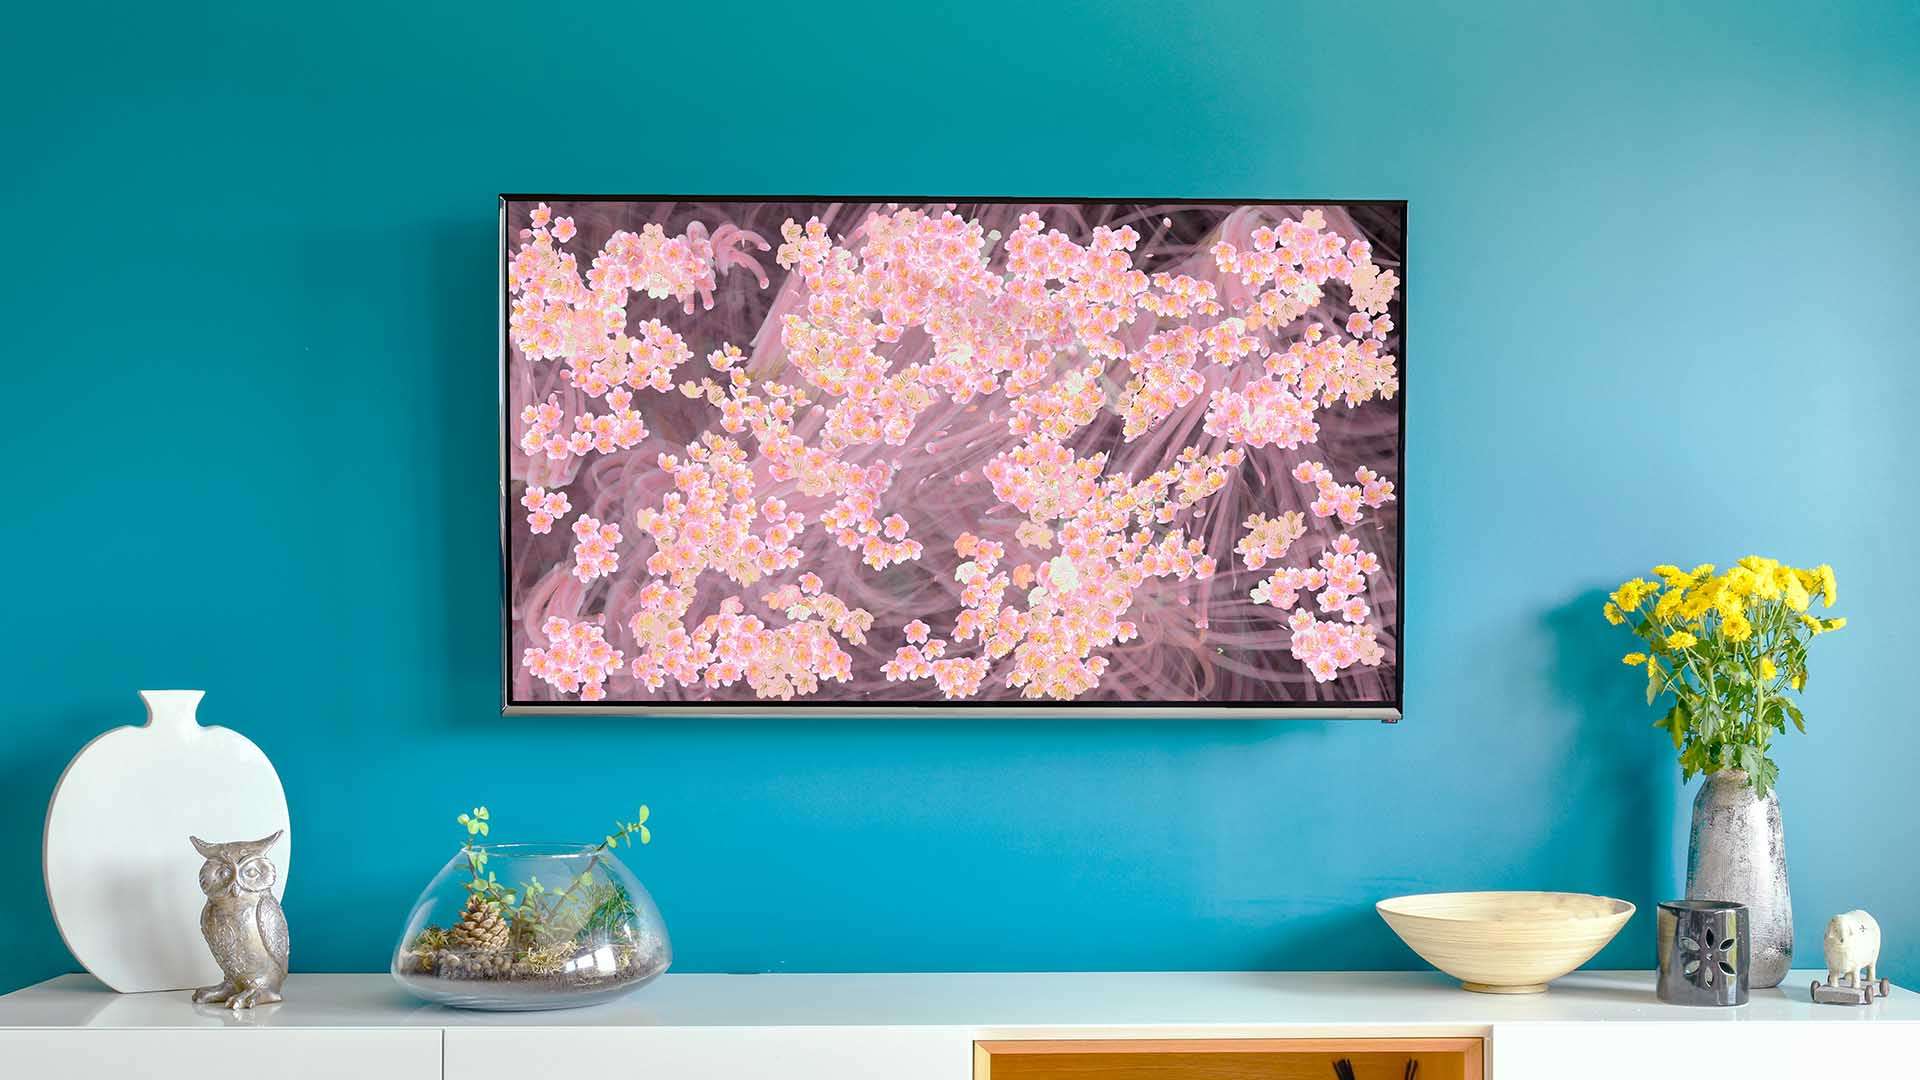 Teamlab's New 'Sakura Bombing Home' Artwork Will Fill Your TV Screen with Cherry Blossoms